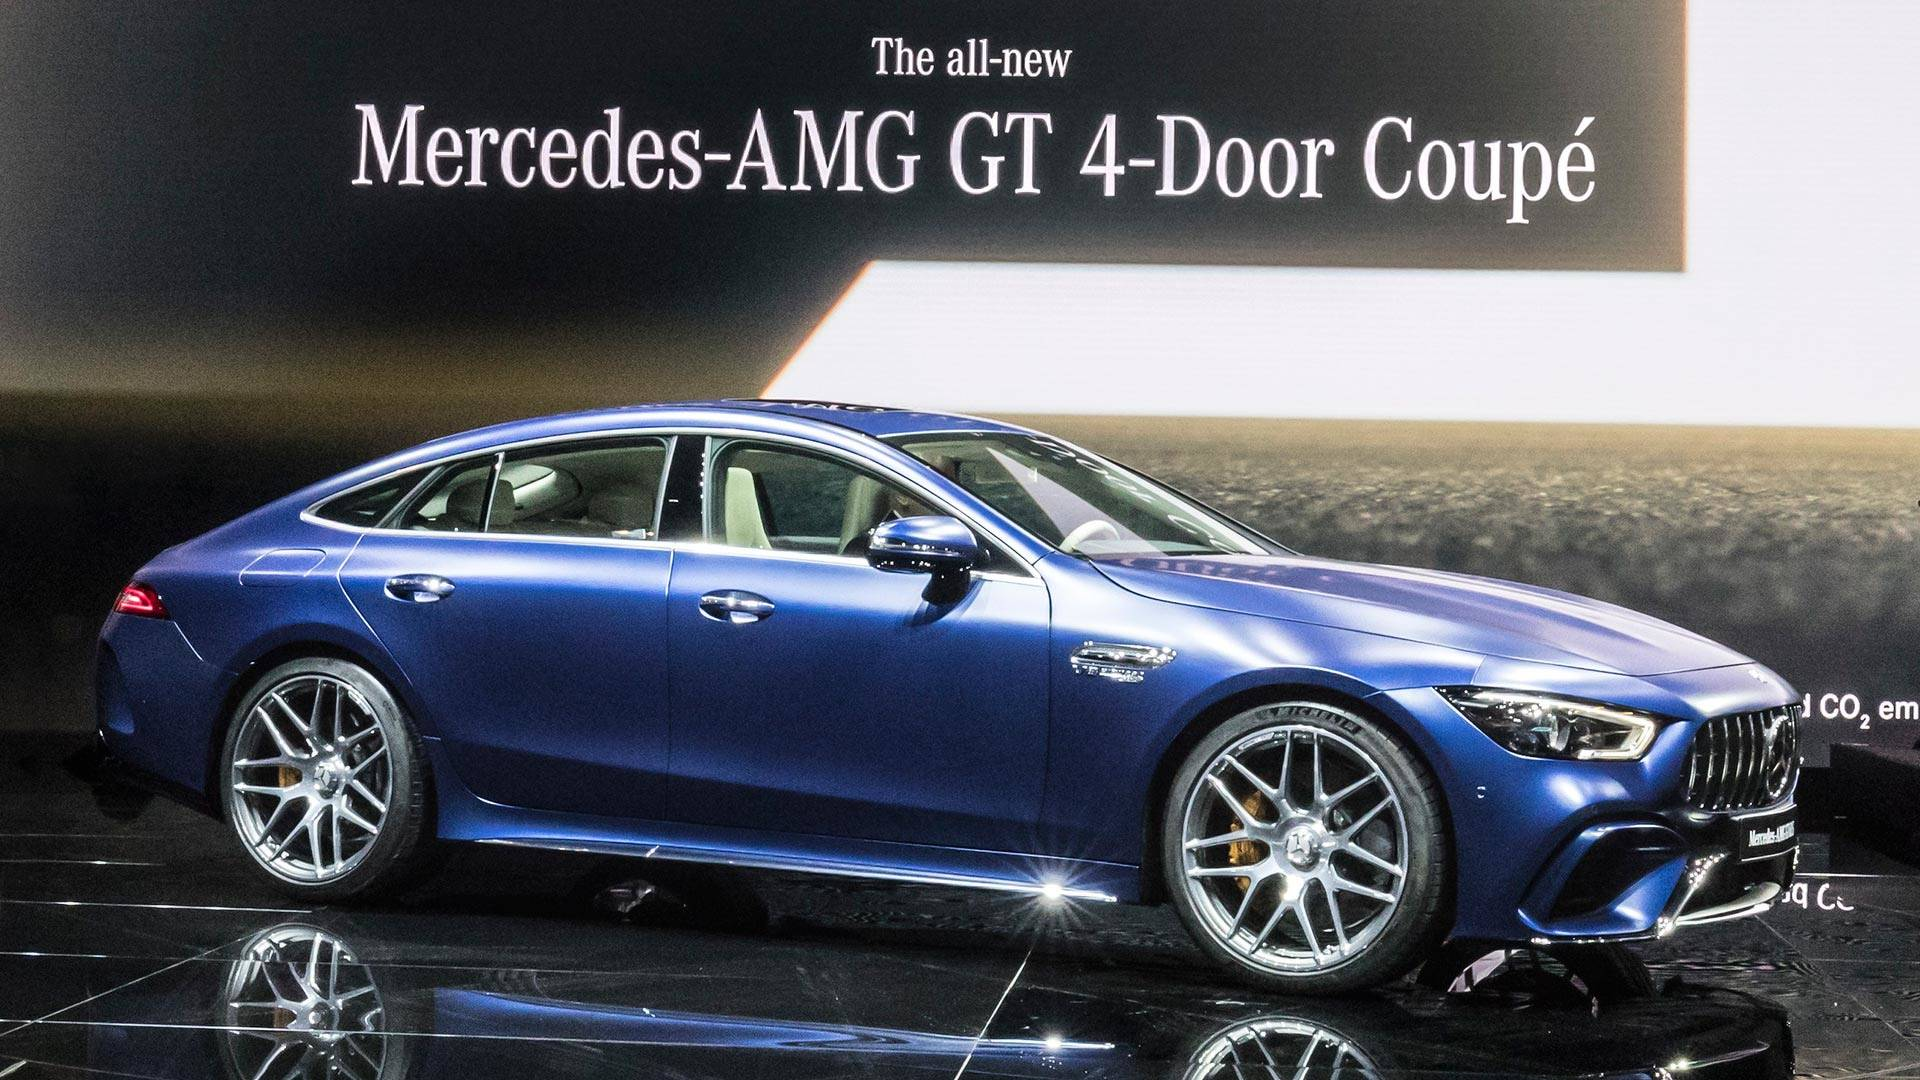 2019 Mercedes Amg Gt 4 Door Coupe Storms Geneva With 630 Hp Home Switches Way